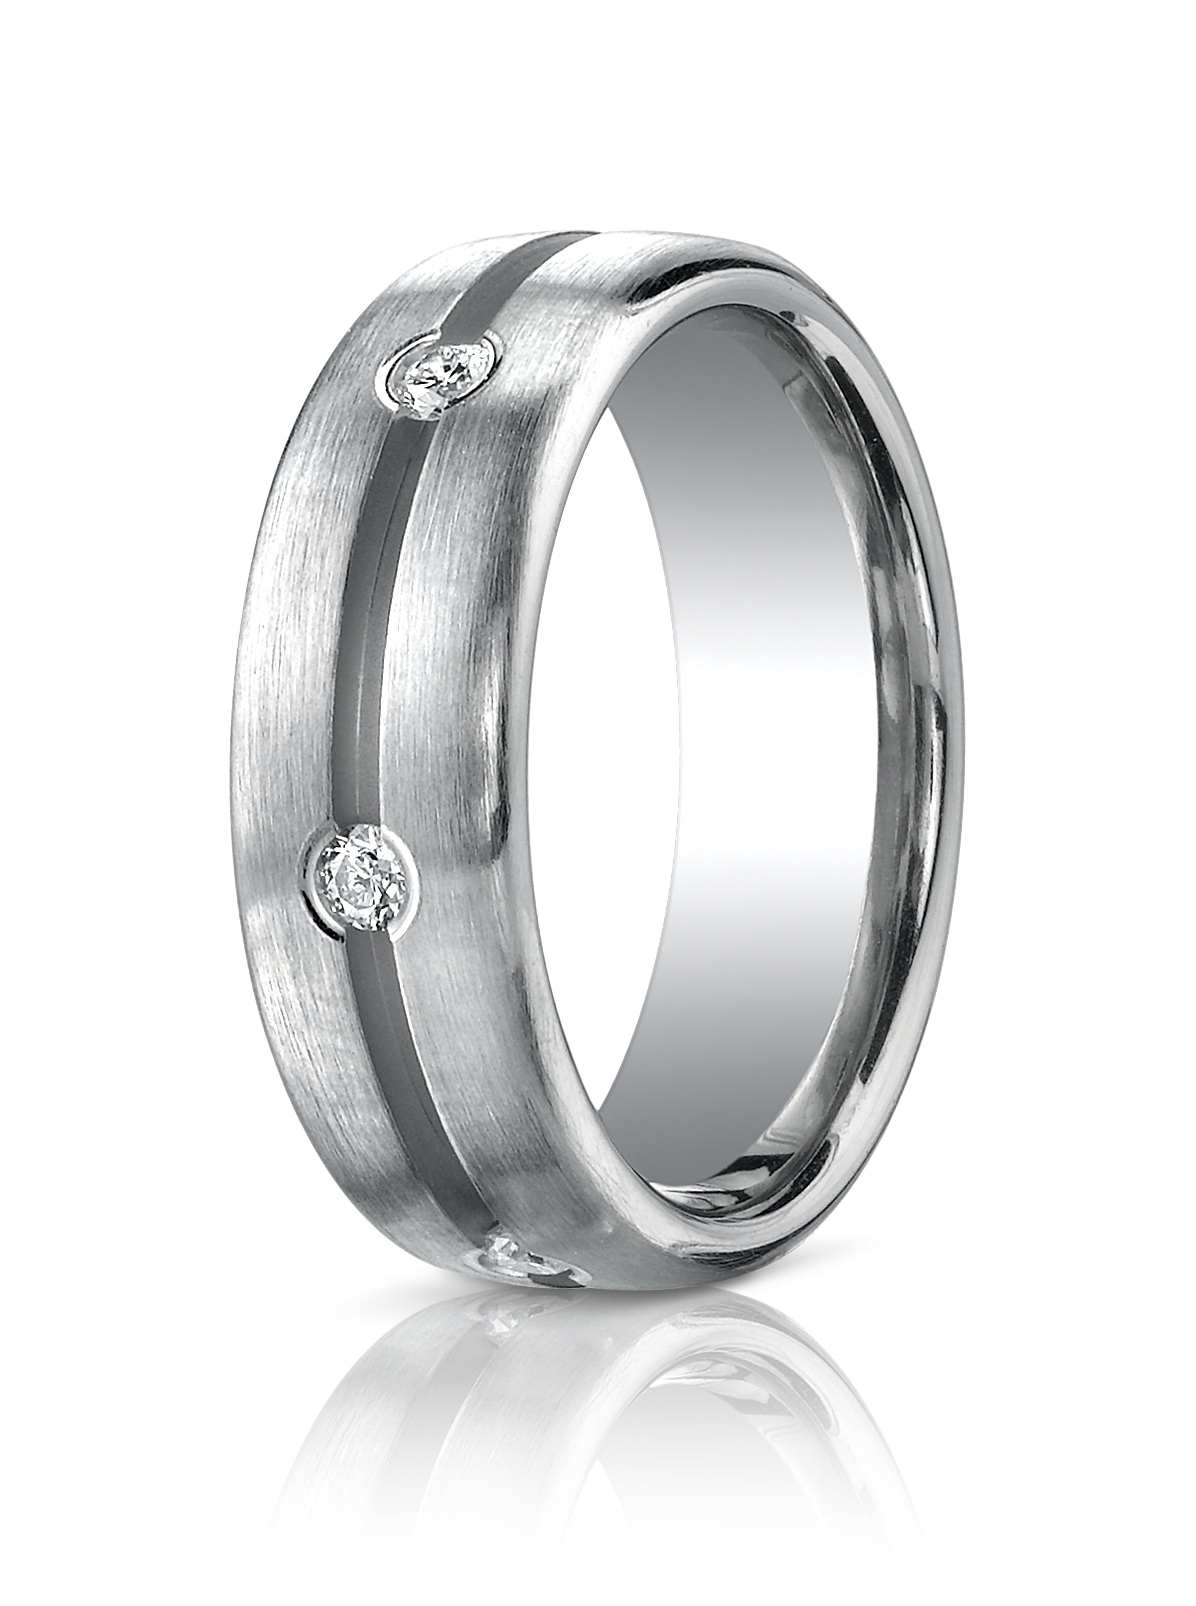 Man's Metal: Benefits of Wedding Band Durability